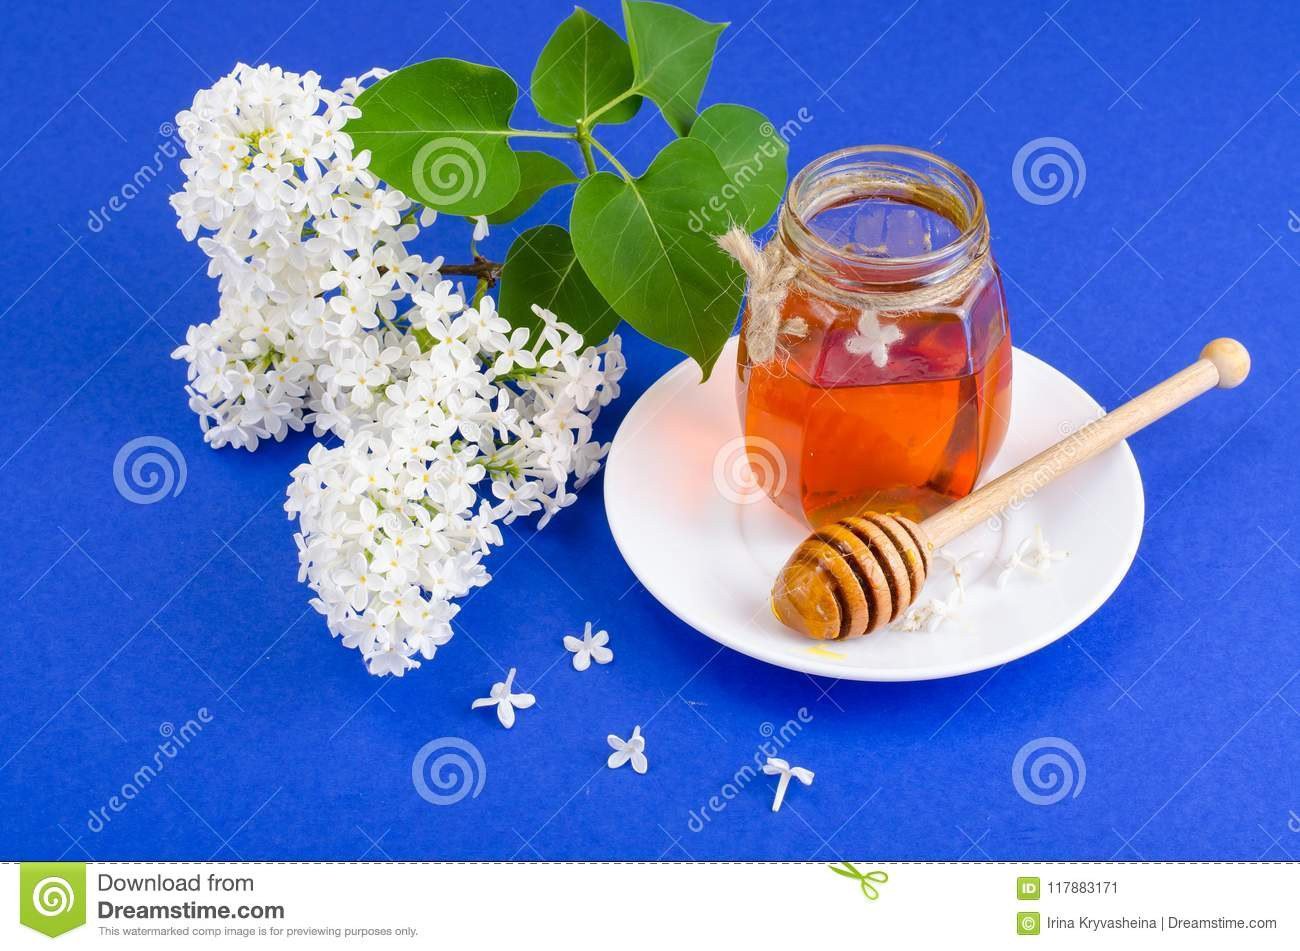 Glass jar with floral aromatic honey